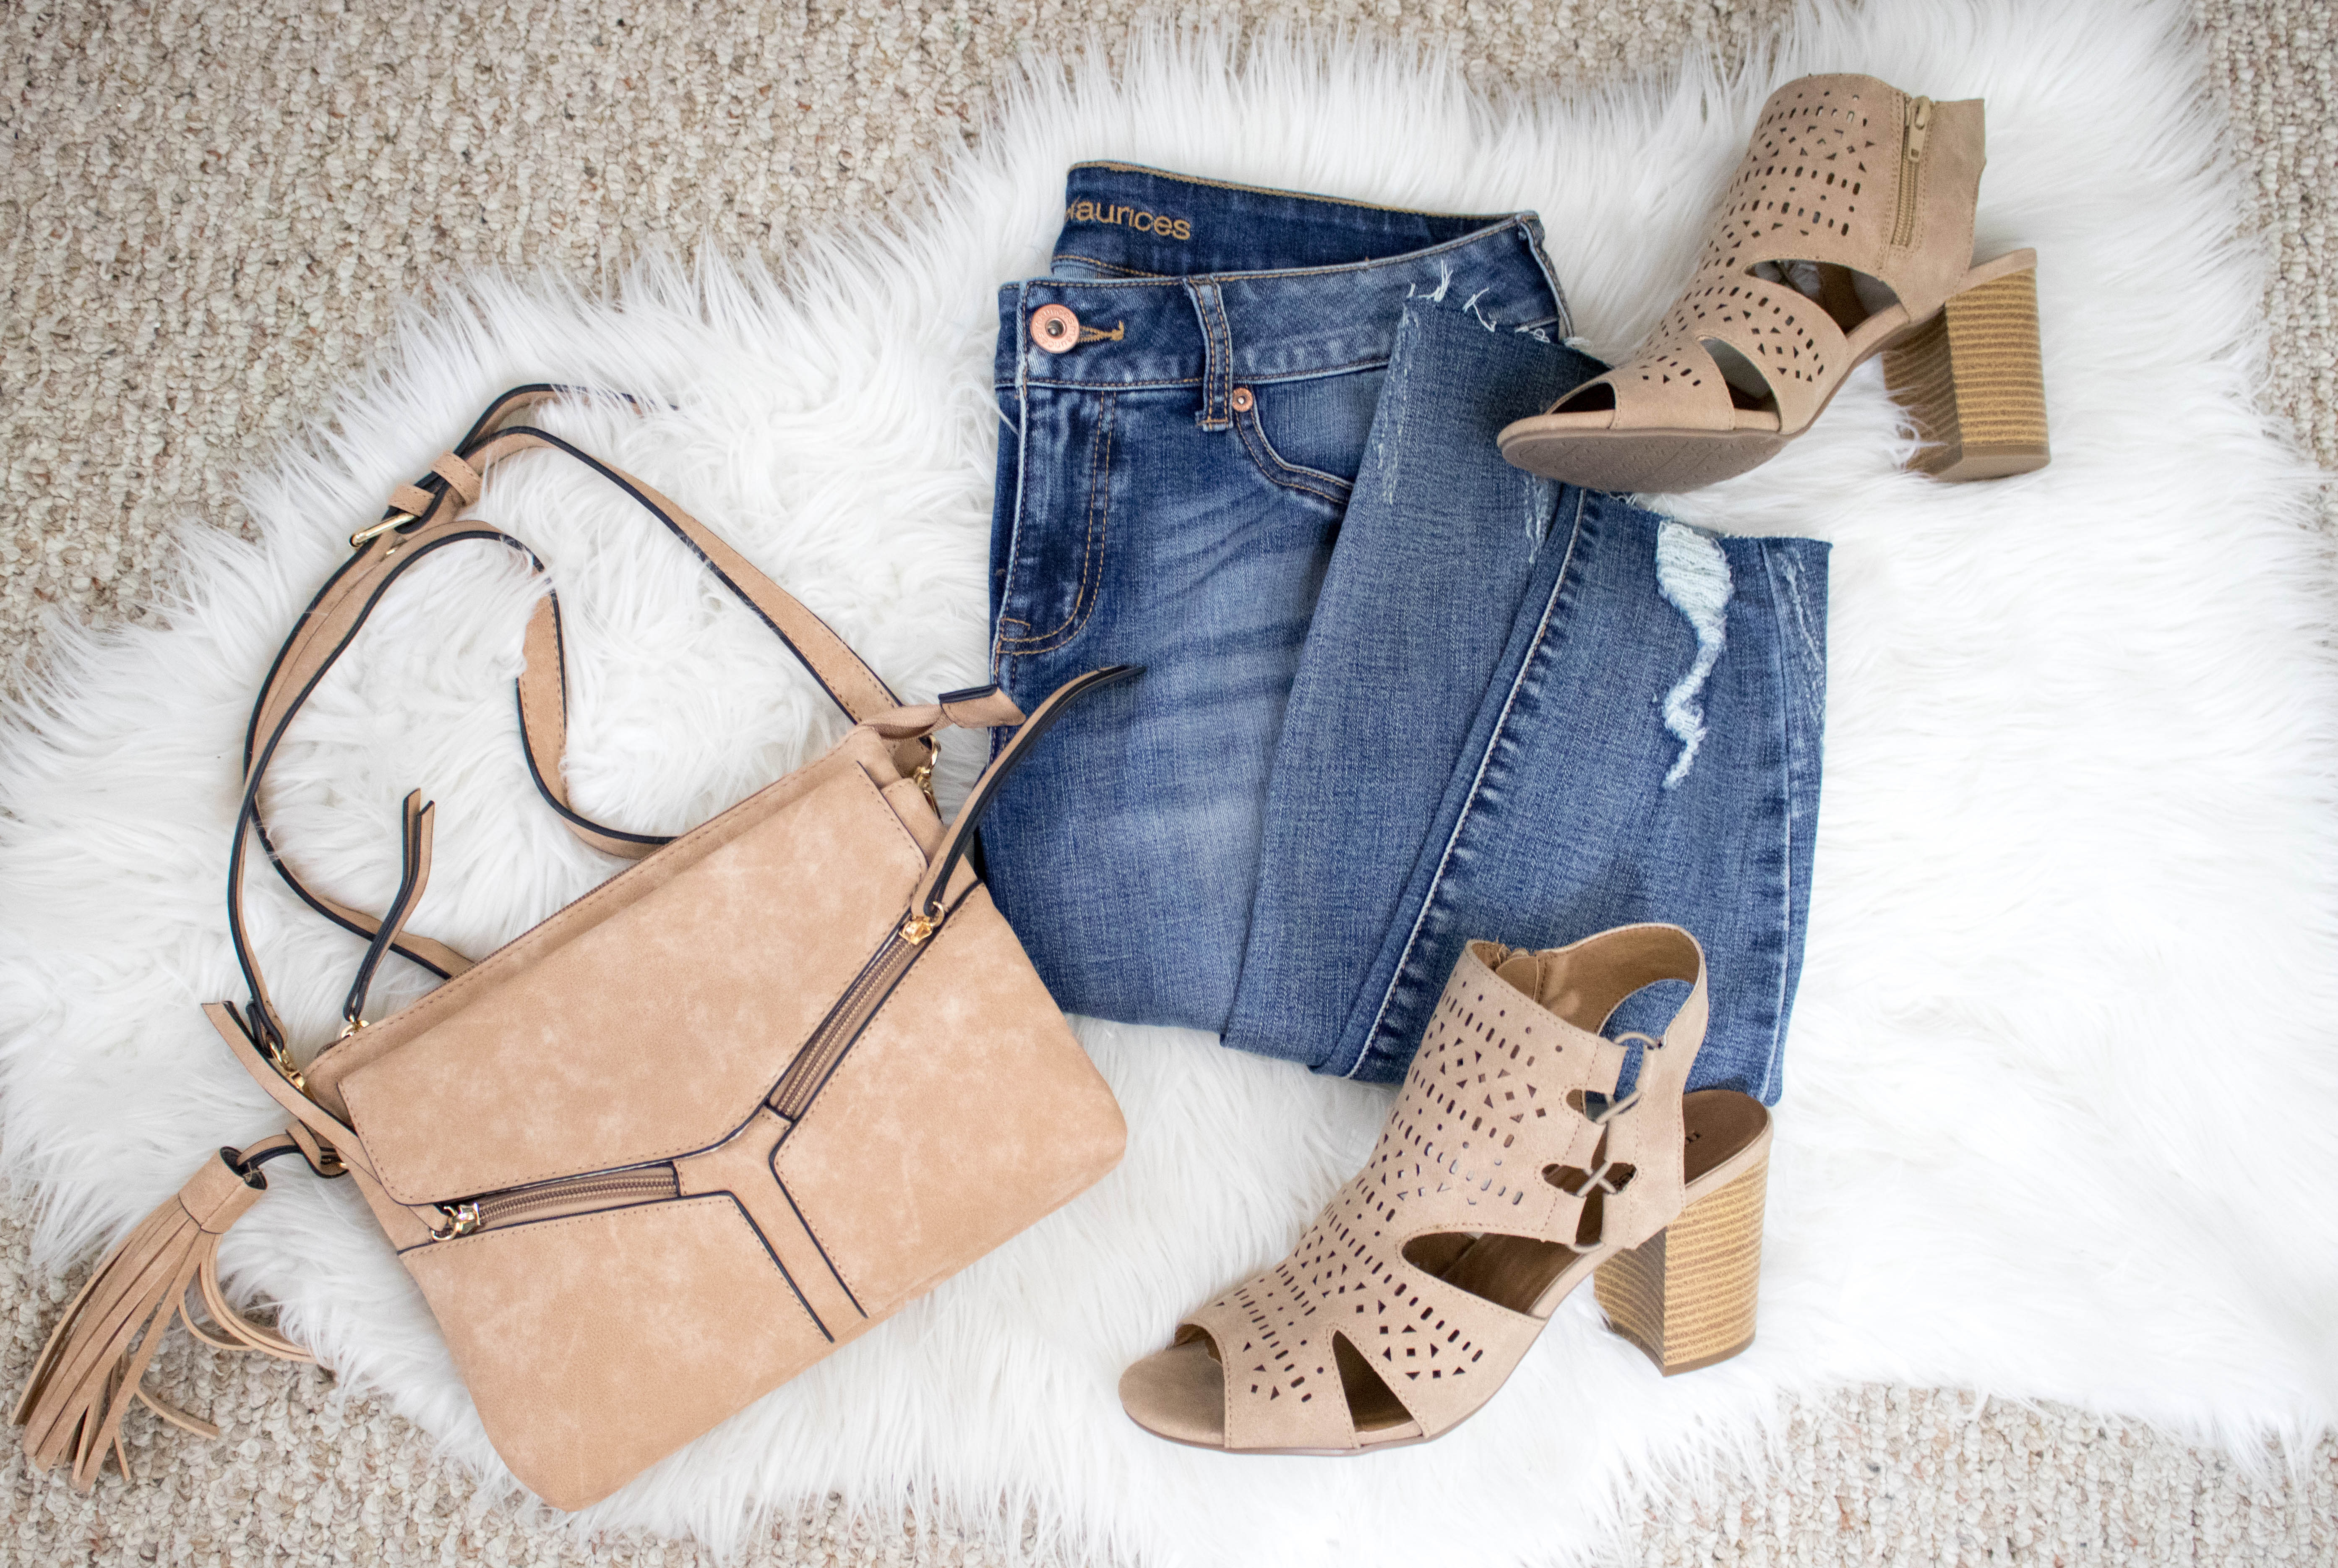 how to find the perfect jeans #maurices #discovermaurices #denimoutfit